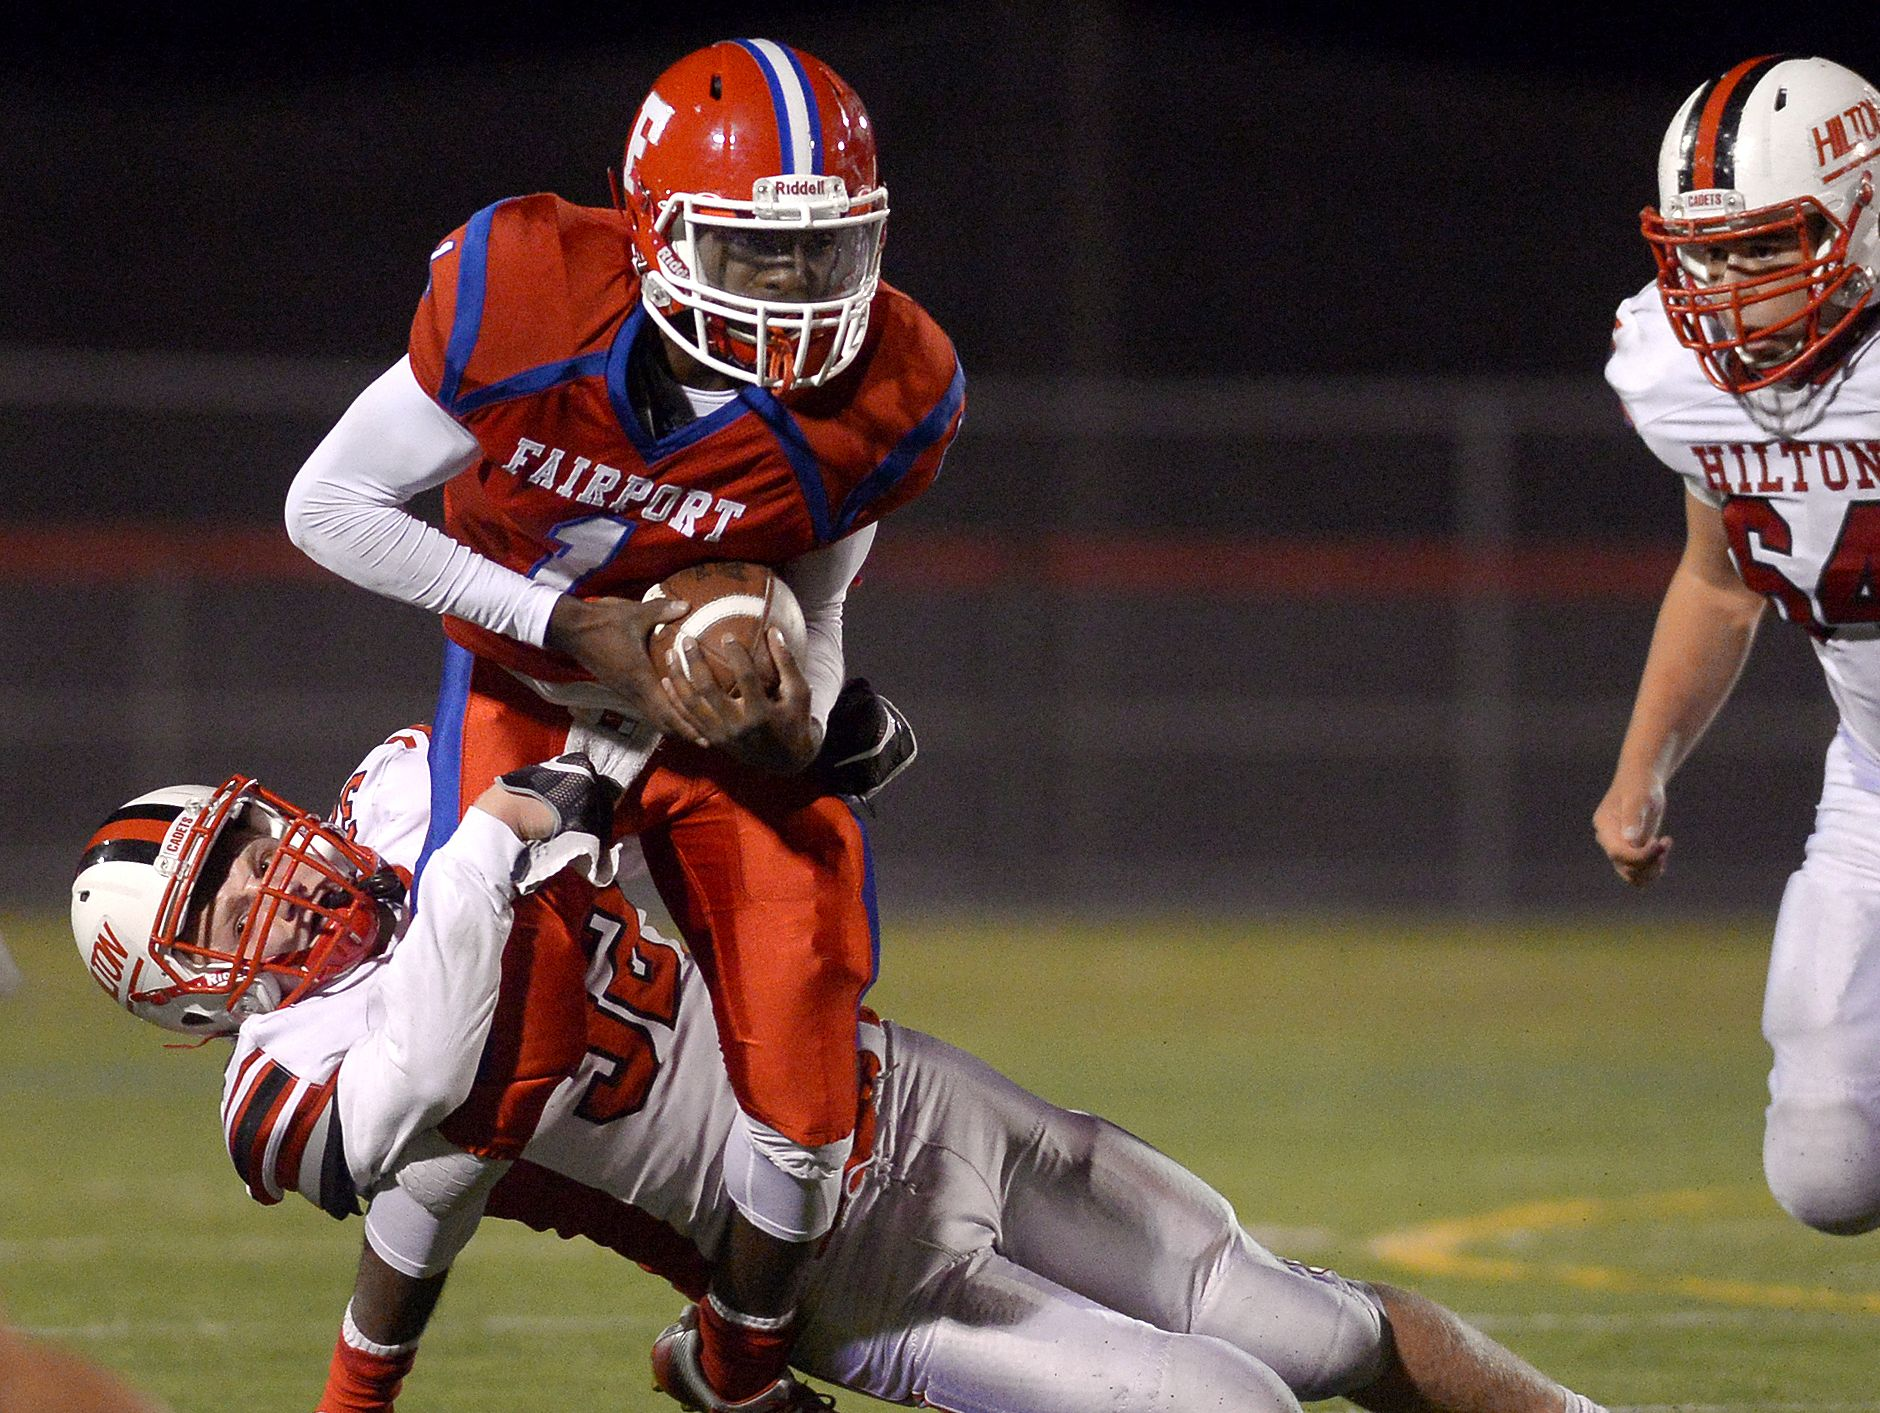 Fairport's Keshawn Howard tries to break the grasp of Hilton's Maxwell Chamberlain last week. Howard and his teammates improved Fairport's record to 6-1.